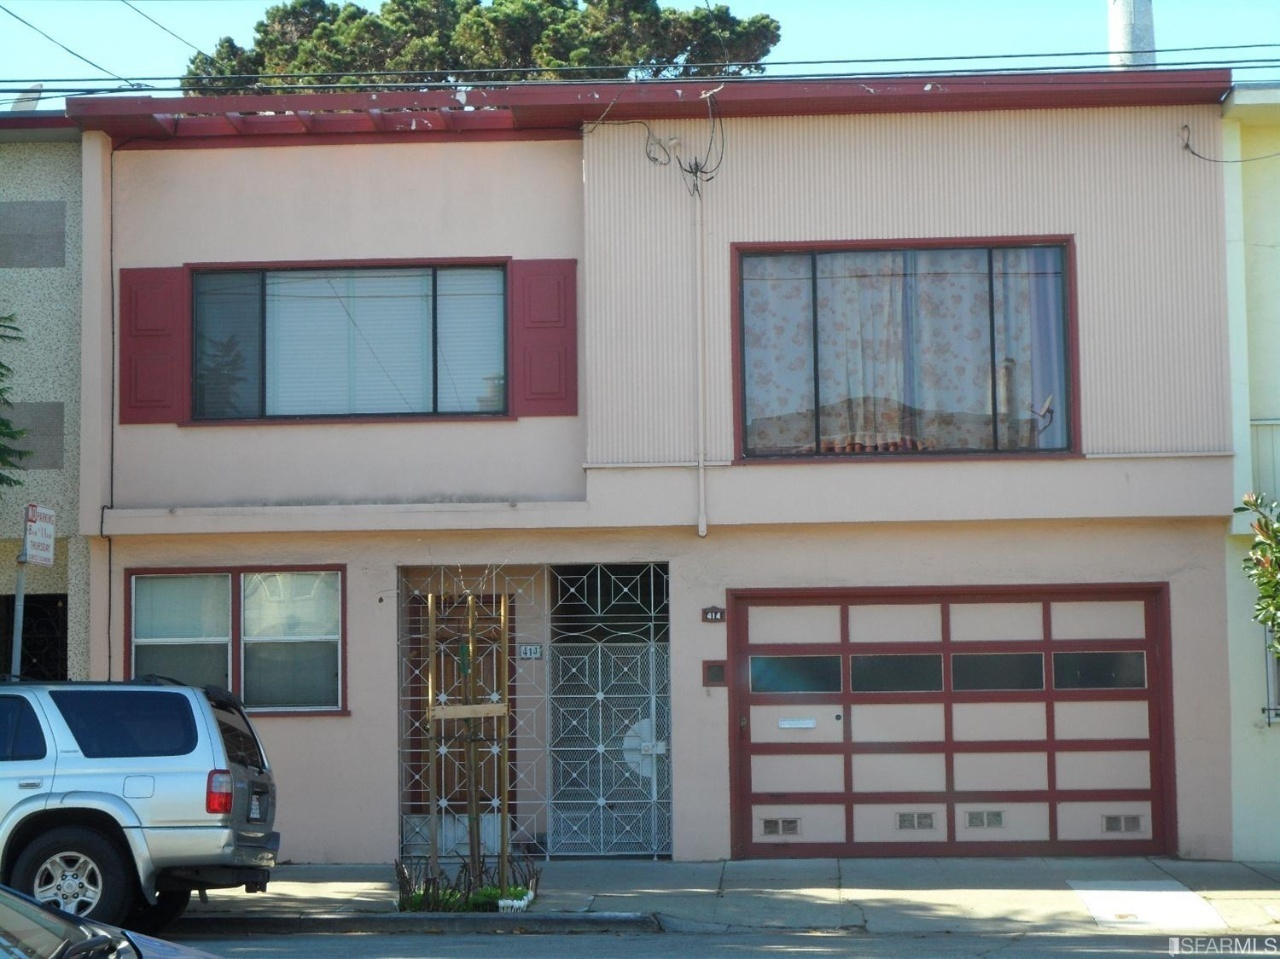 Round Table San Bruno Ave 414 Somerset St San Francisco Ca 94134 Mls 441263 Redfin